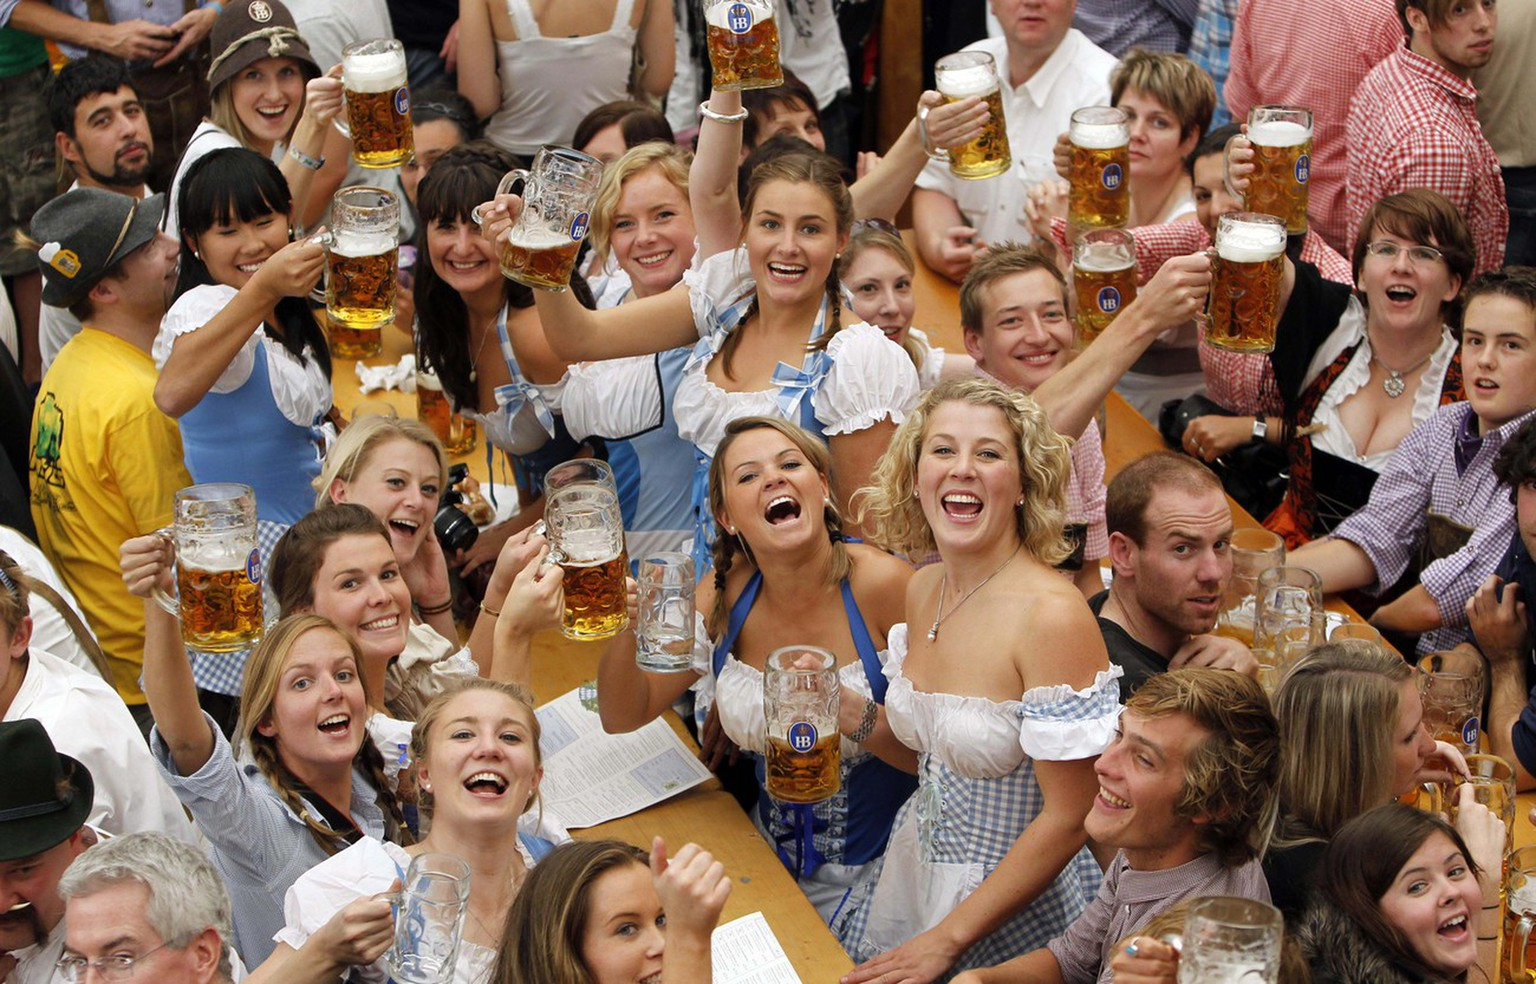 Young women toast with beer after the opening of the Oktoberfest beer festival in Munich, southern Germany, Saturday, Sept. 18, 2010. People from around the world are expected to the biggest and most famous beer festival Oktoberfest which runs from Sept. 18 until Oct.  4 and marks its 200th anniversary this year. (AP Photo/Matthias Schrader)